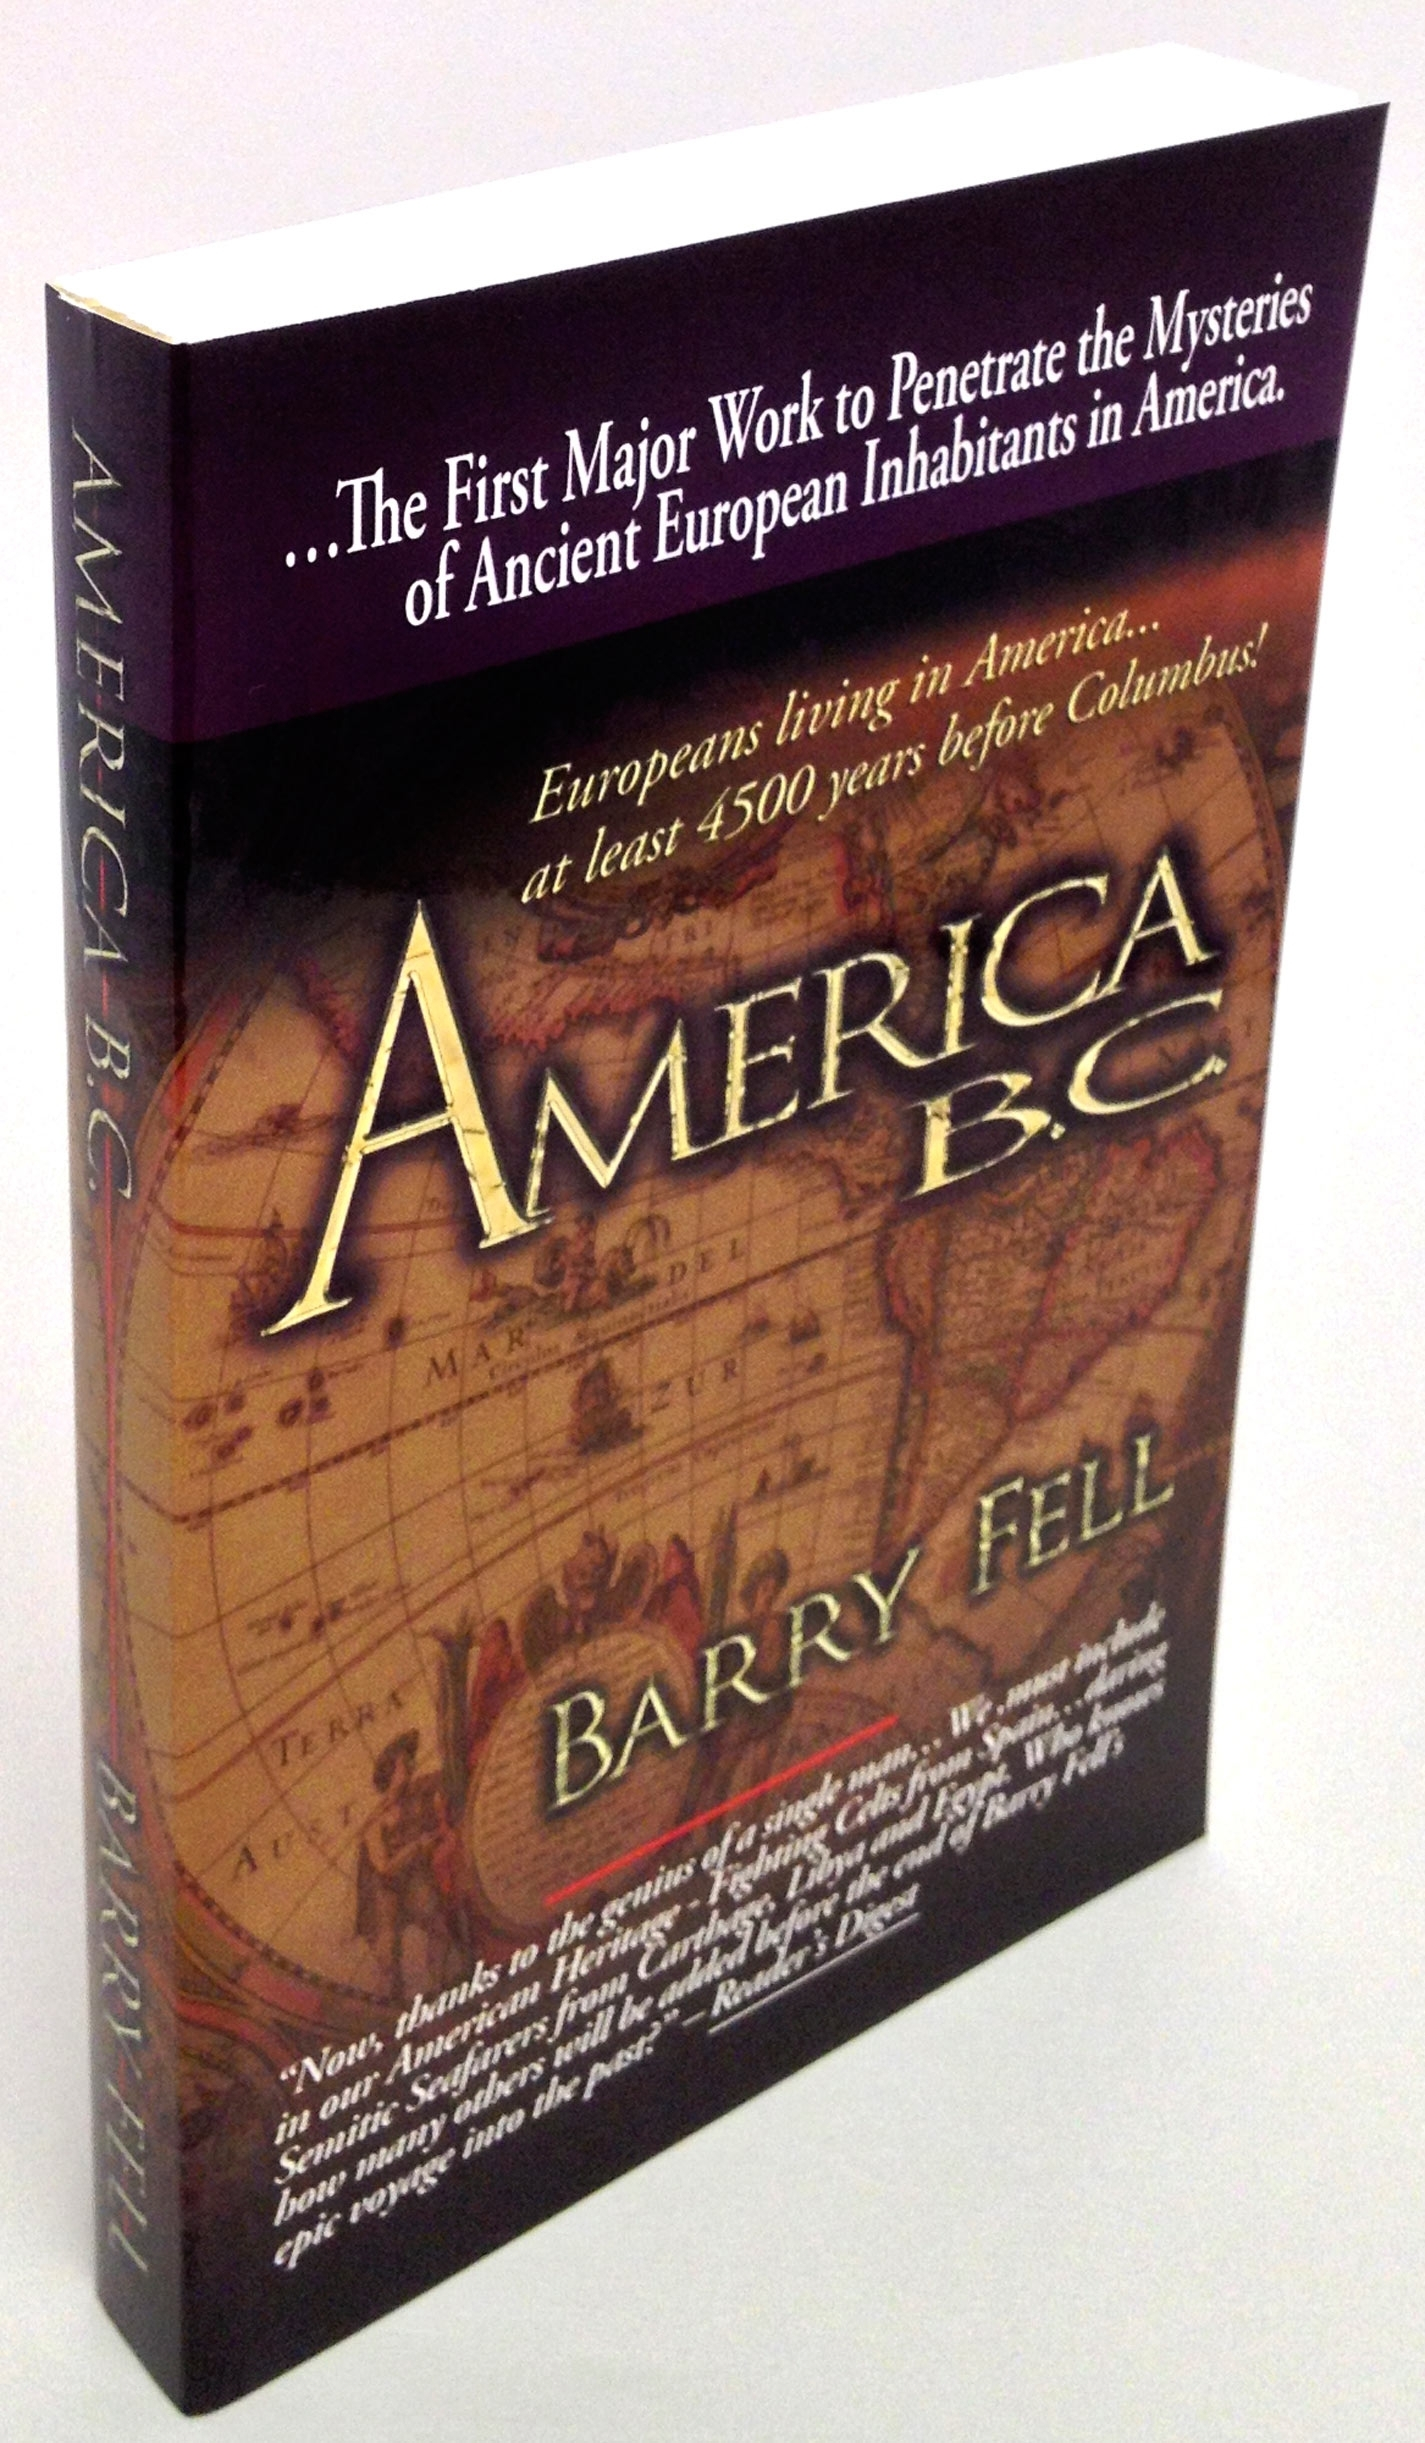 America B.C. [Barry Fell]  Ancient Settlers in the New World, ...THE Book that Started it All.. the PreColumbian Debate.